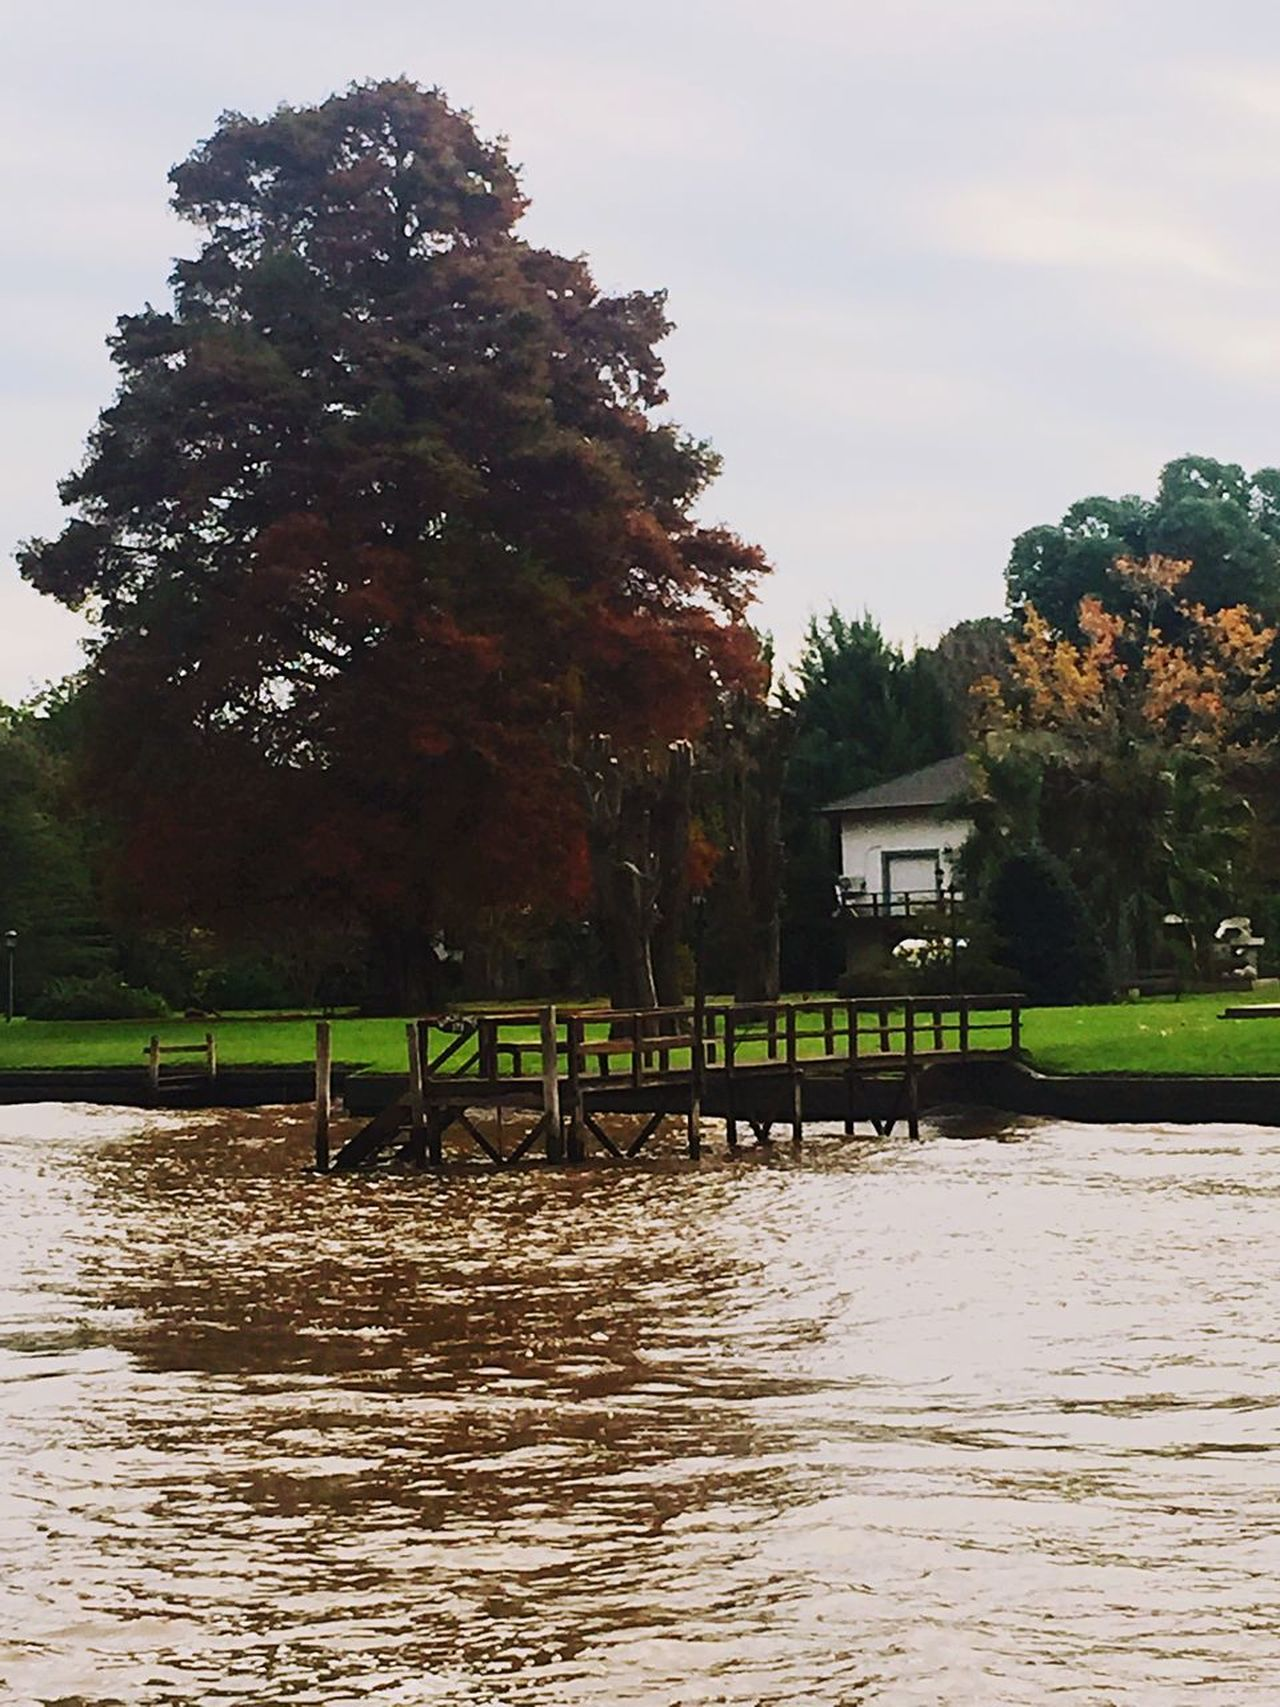 Tree Nature Built Structure Tranquility Sky Water Outdoors Architecture No People Day Grass Beauty In Nature Building Exterior Tigre Delta